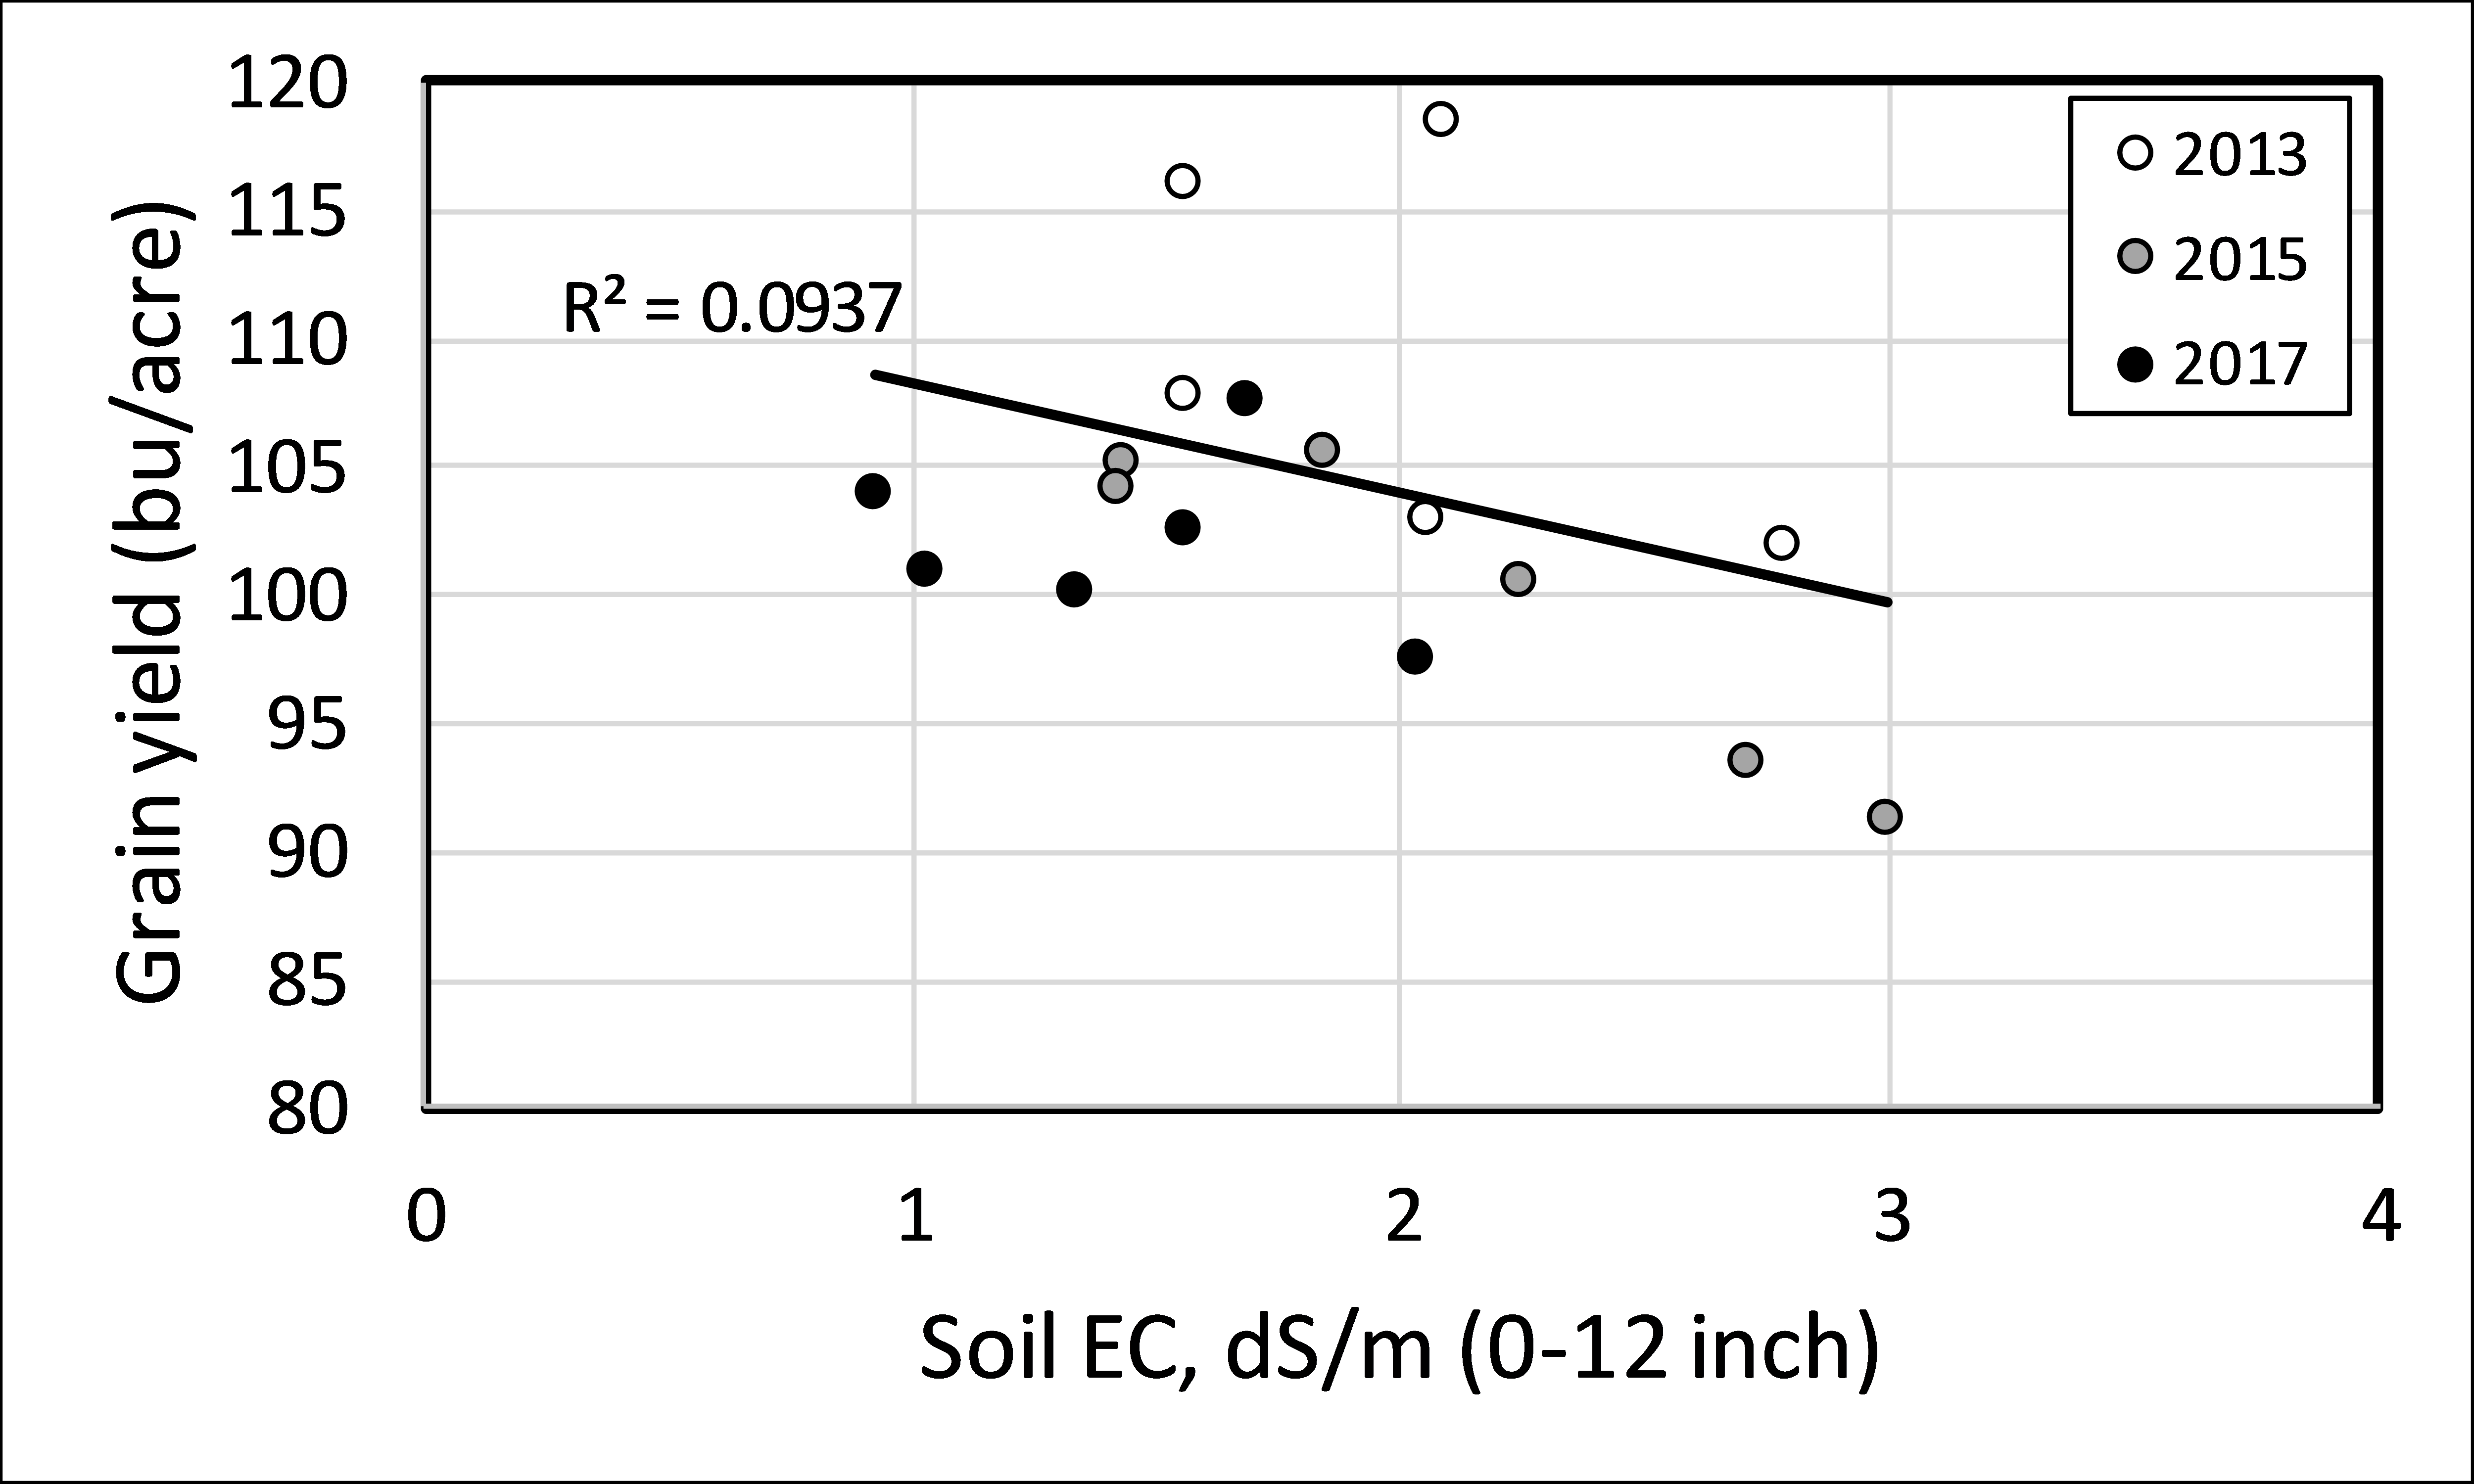 Figure 13.1 Grain yield response to electrical conductivity (EC) on manured soils. Fertilizer treatments are not included in this graph, as other parameters beyond SAR appeared to be influencing yield.